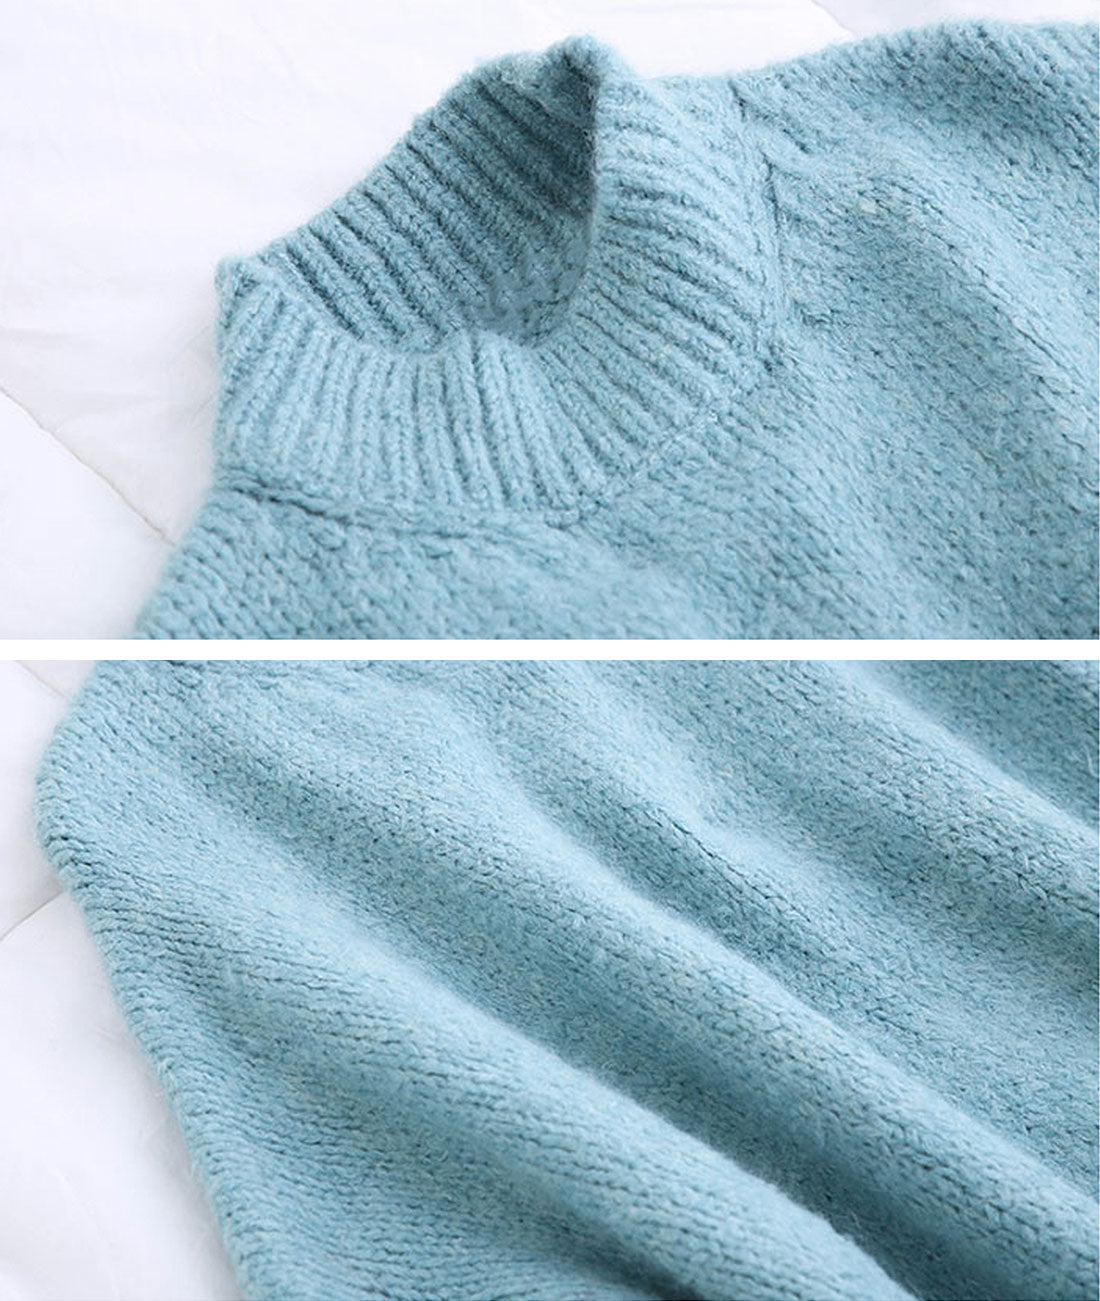 Side By Size Knitted Sweater Dress Details 2